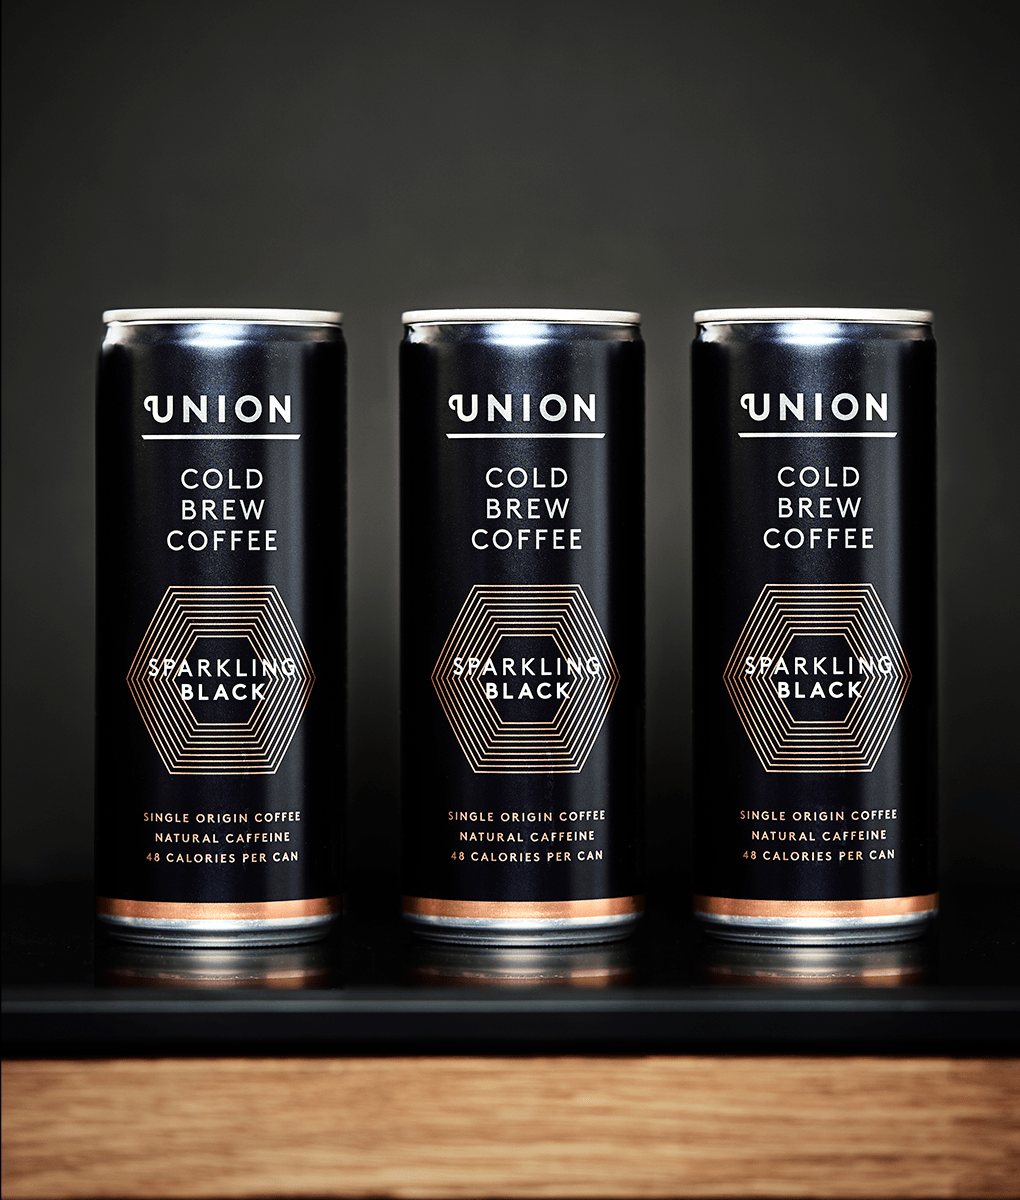 Image: Sparkling Black, Cold Brew Coffee - 12 x 250ml